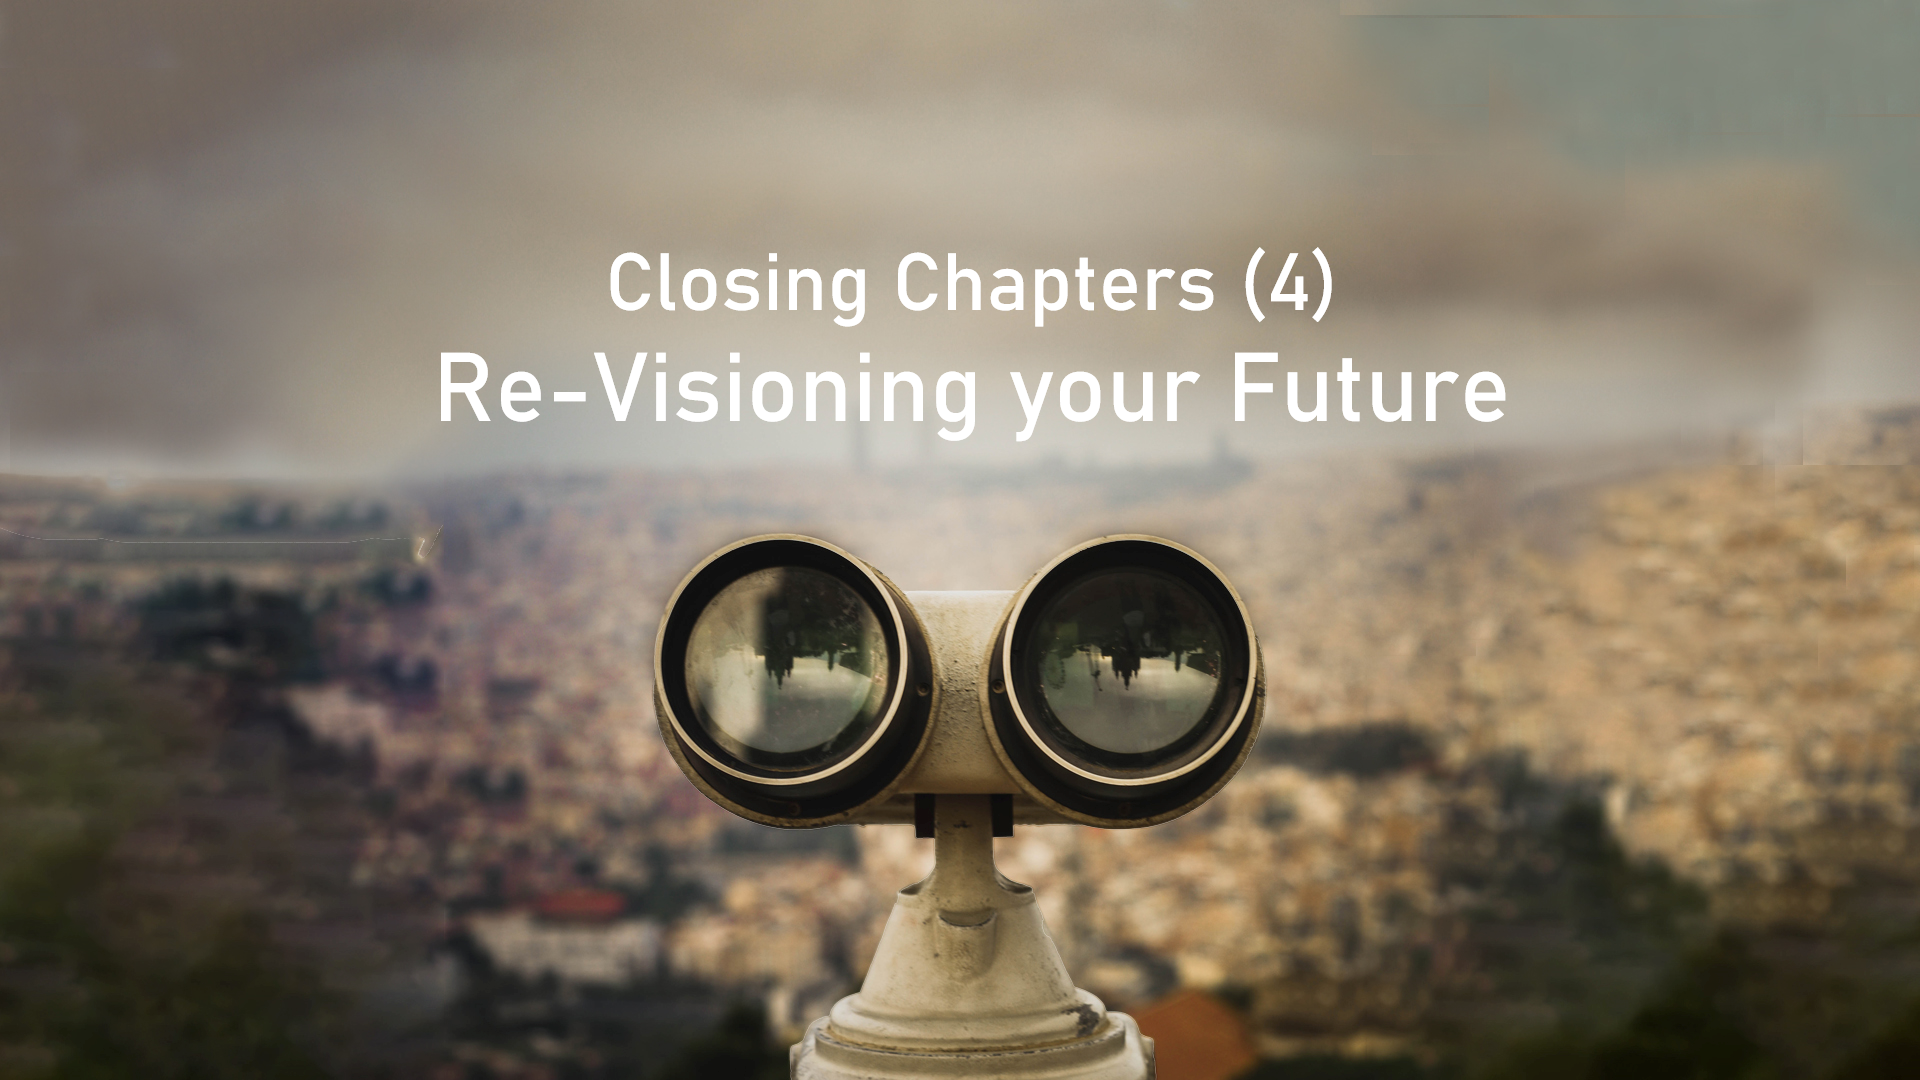 Closing Chapters – Re-visioning your future (part 4 of 4)